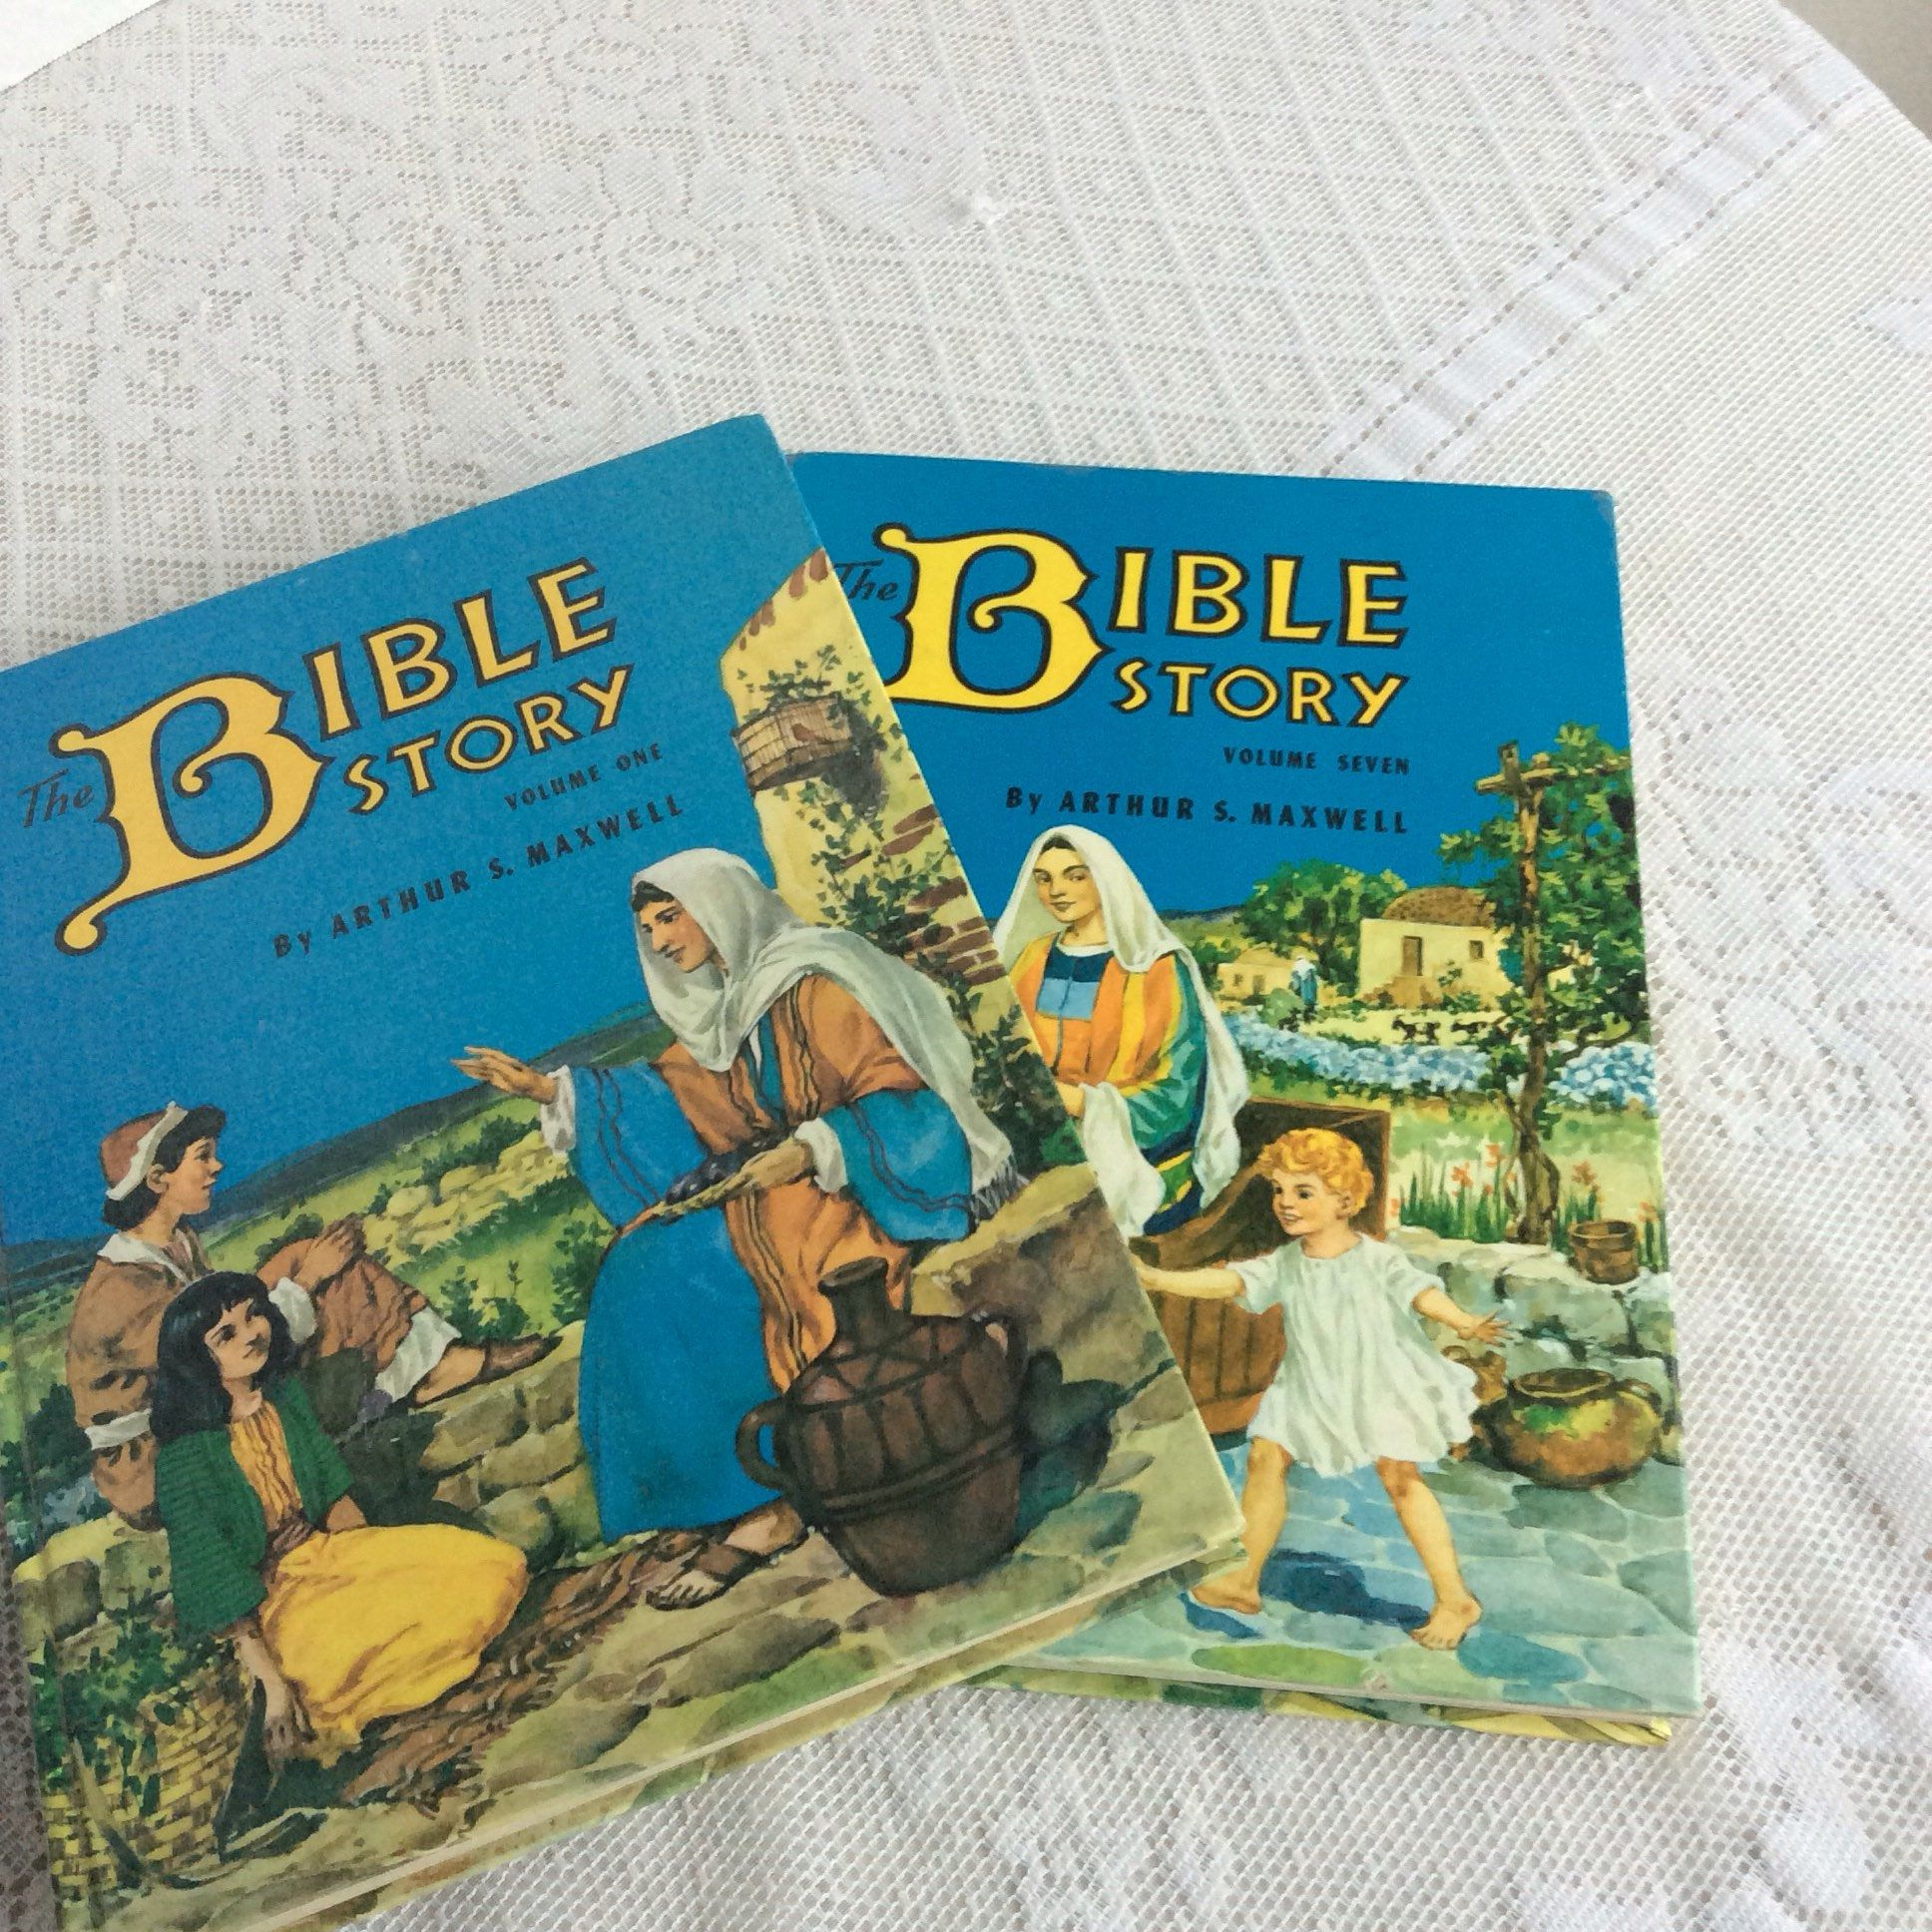 the bible story by arthur s maxwell set of two hardcover books